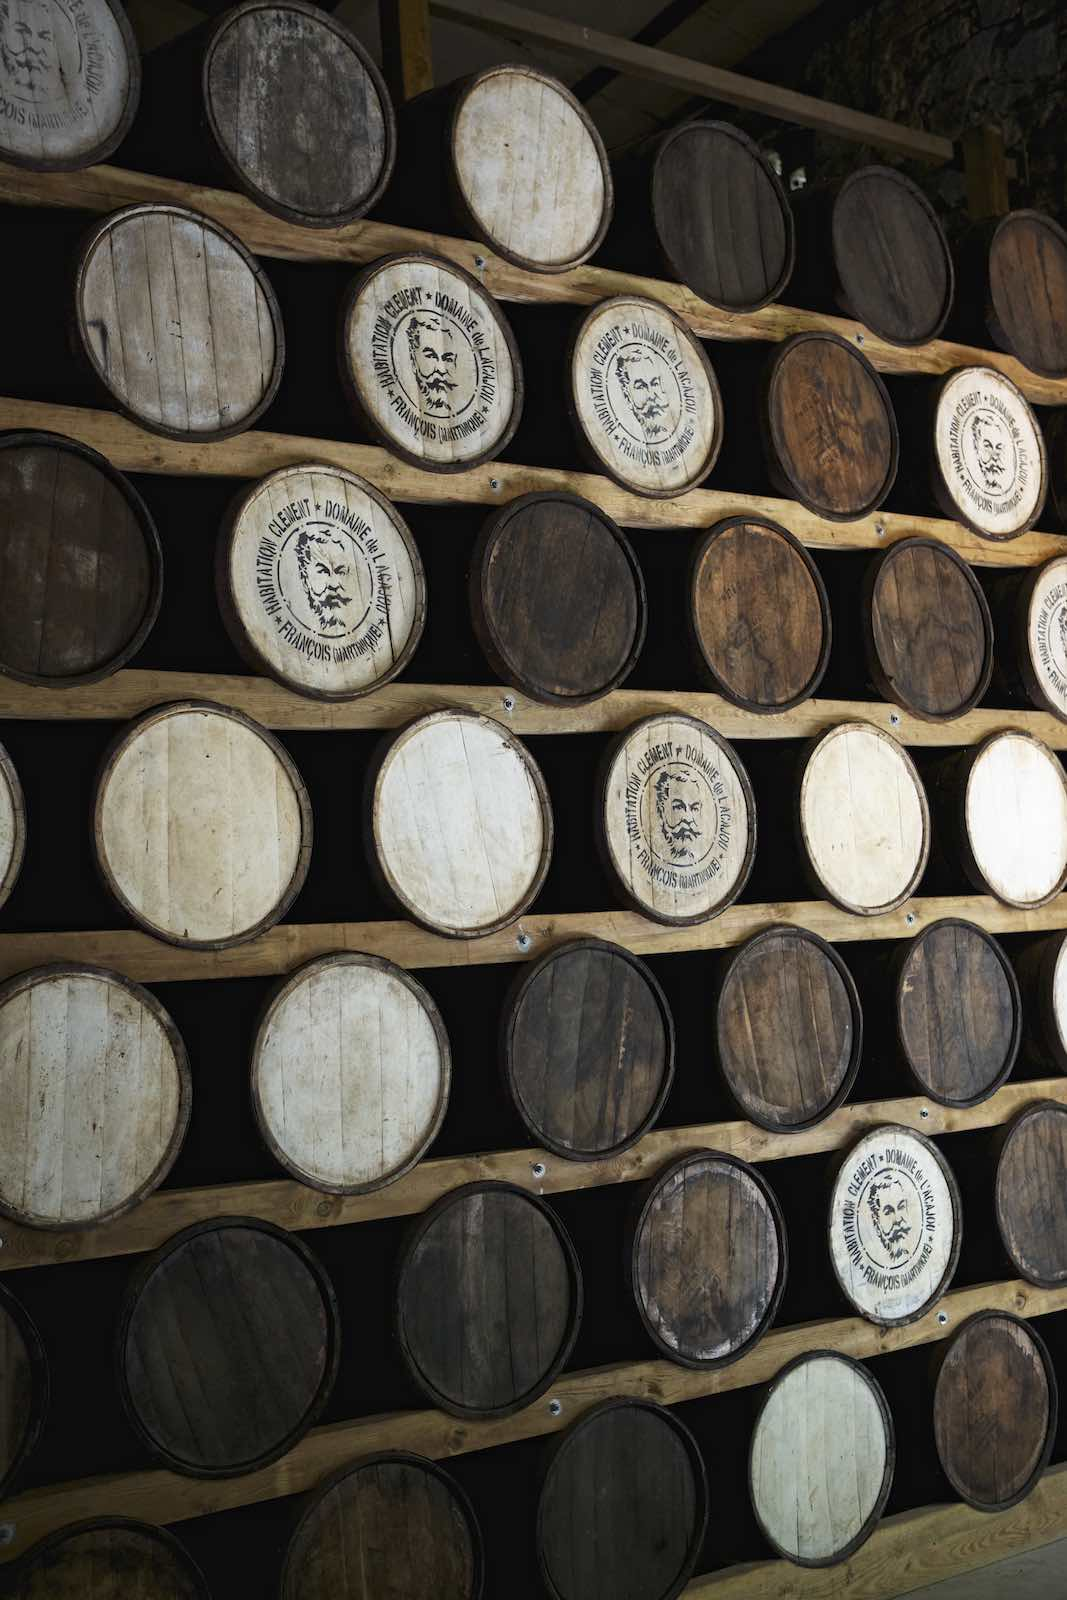 Wooden rum barrels stacked high on wood planks.